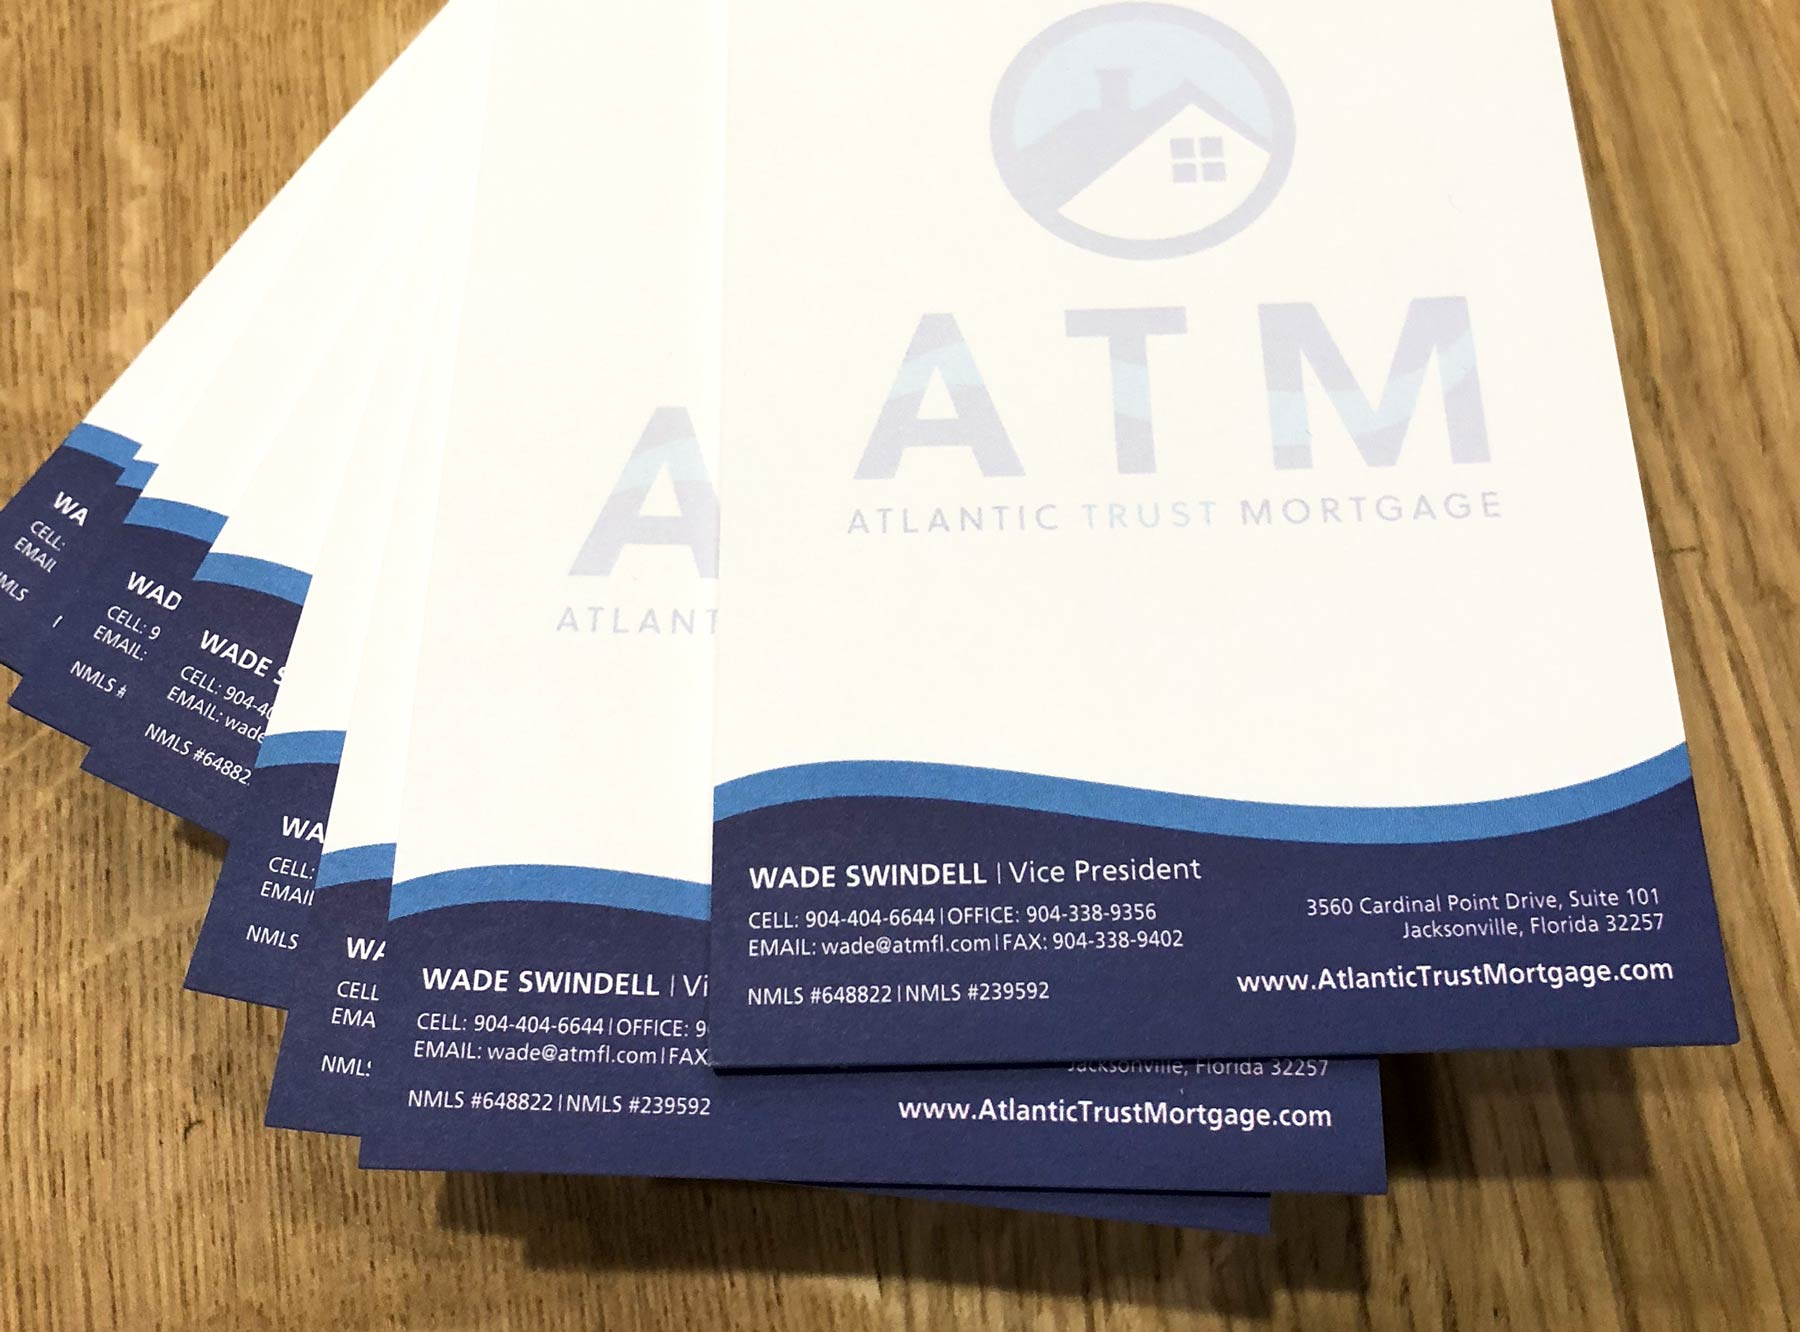 Atlantic Trust Mortgage sticky pad display at the launch party in Jacksonville, FL.